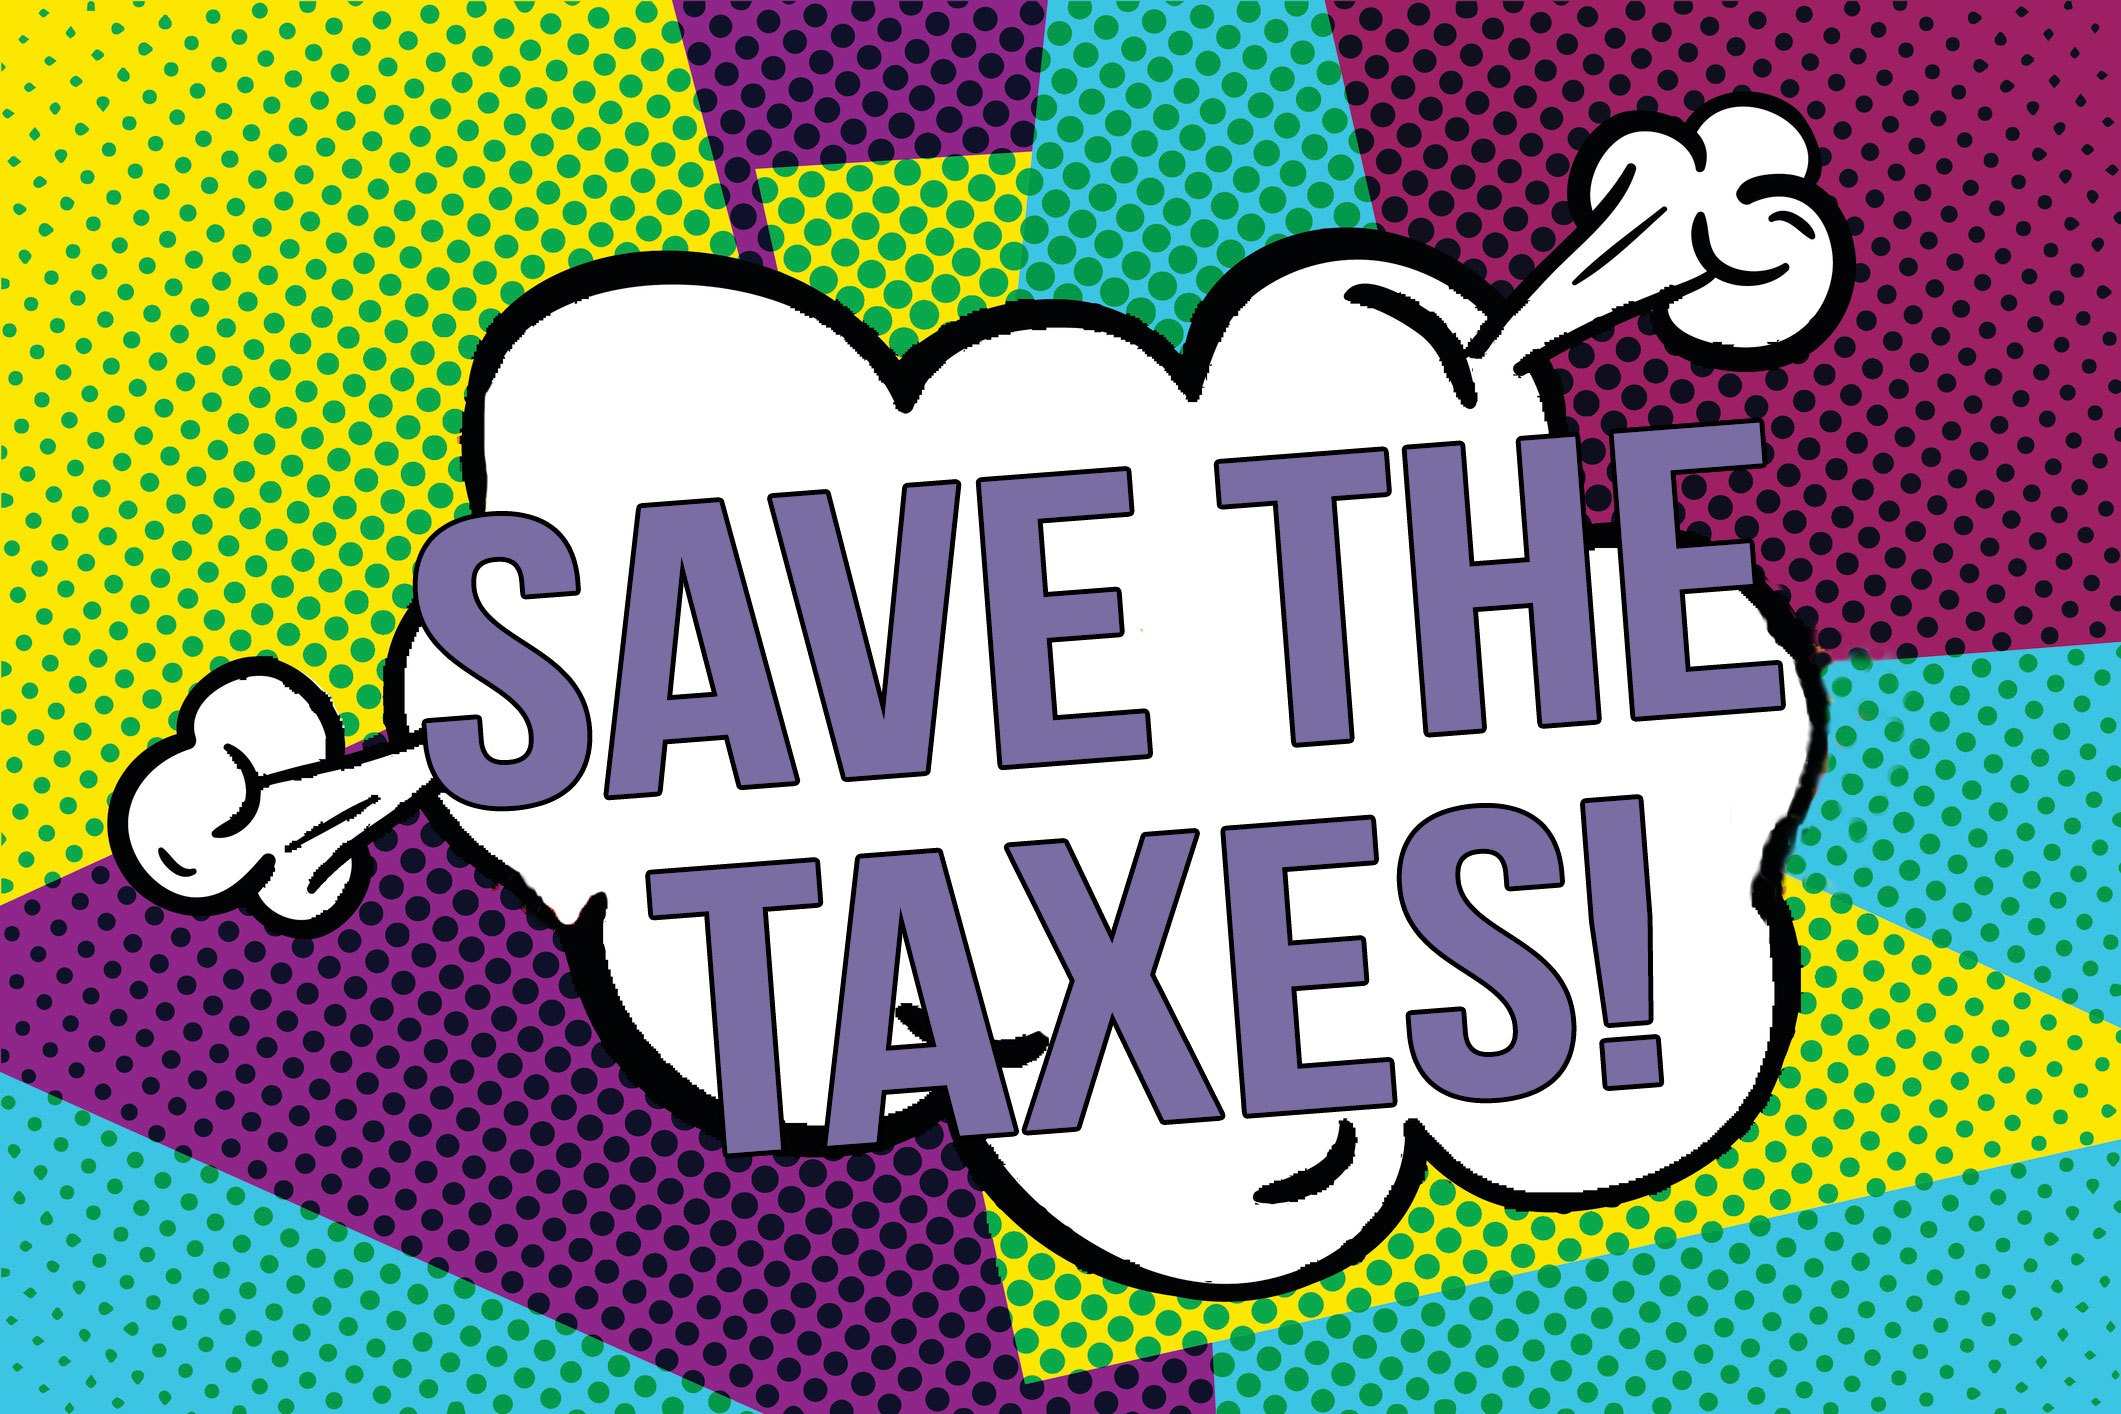 Save The Taxes!